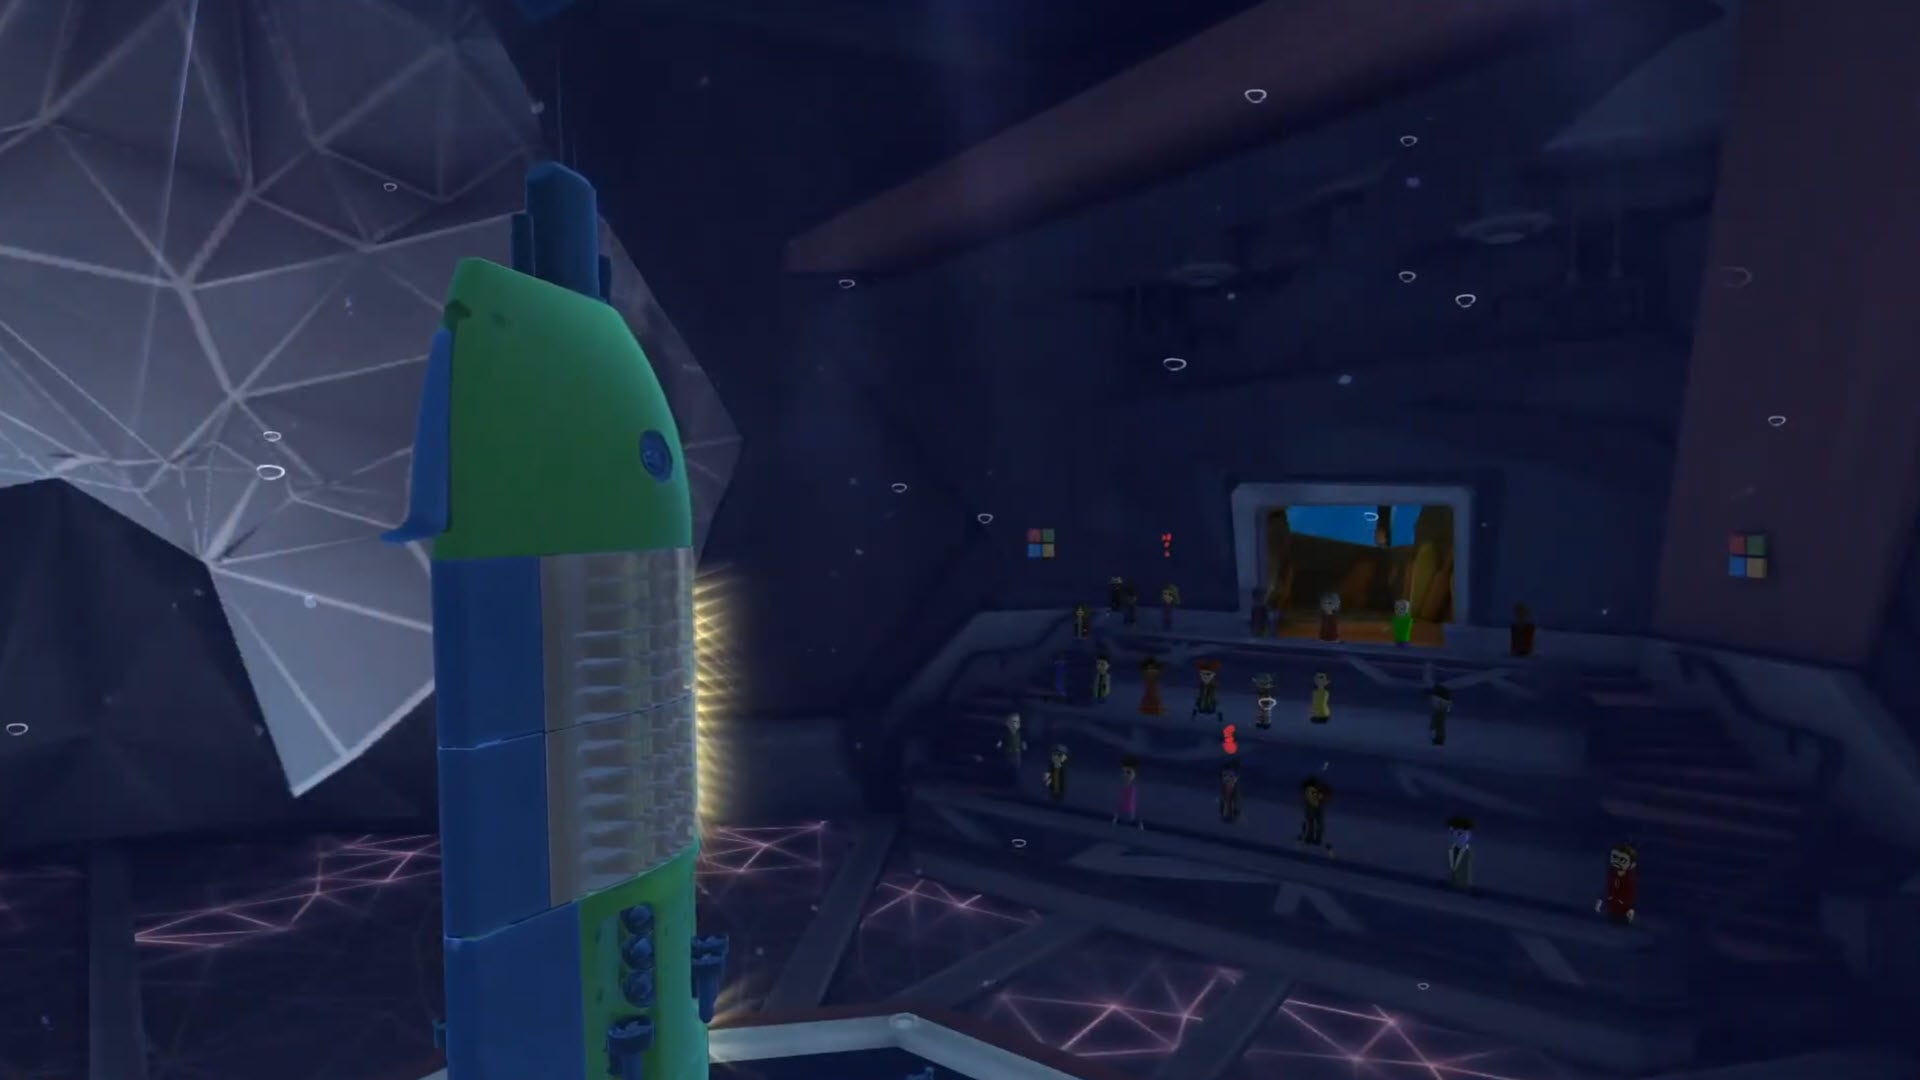 A digital submarine rising from a stage in front of a group of digital avatars.